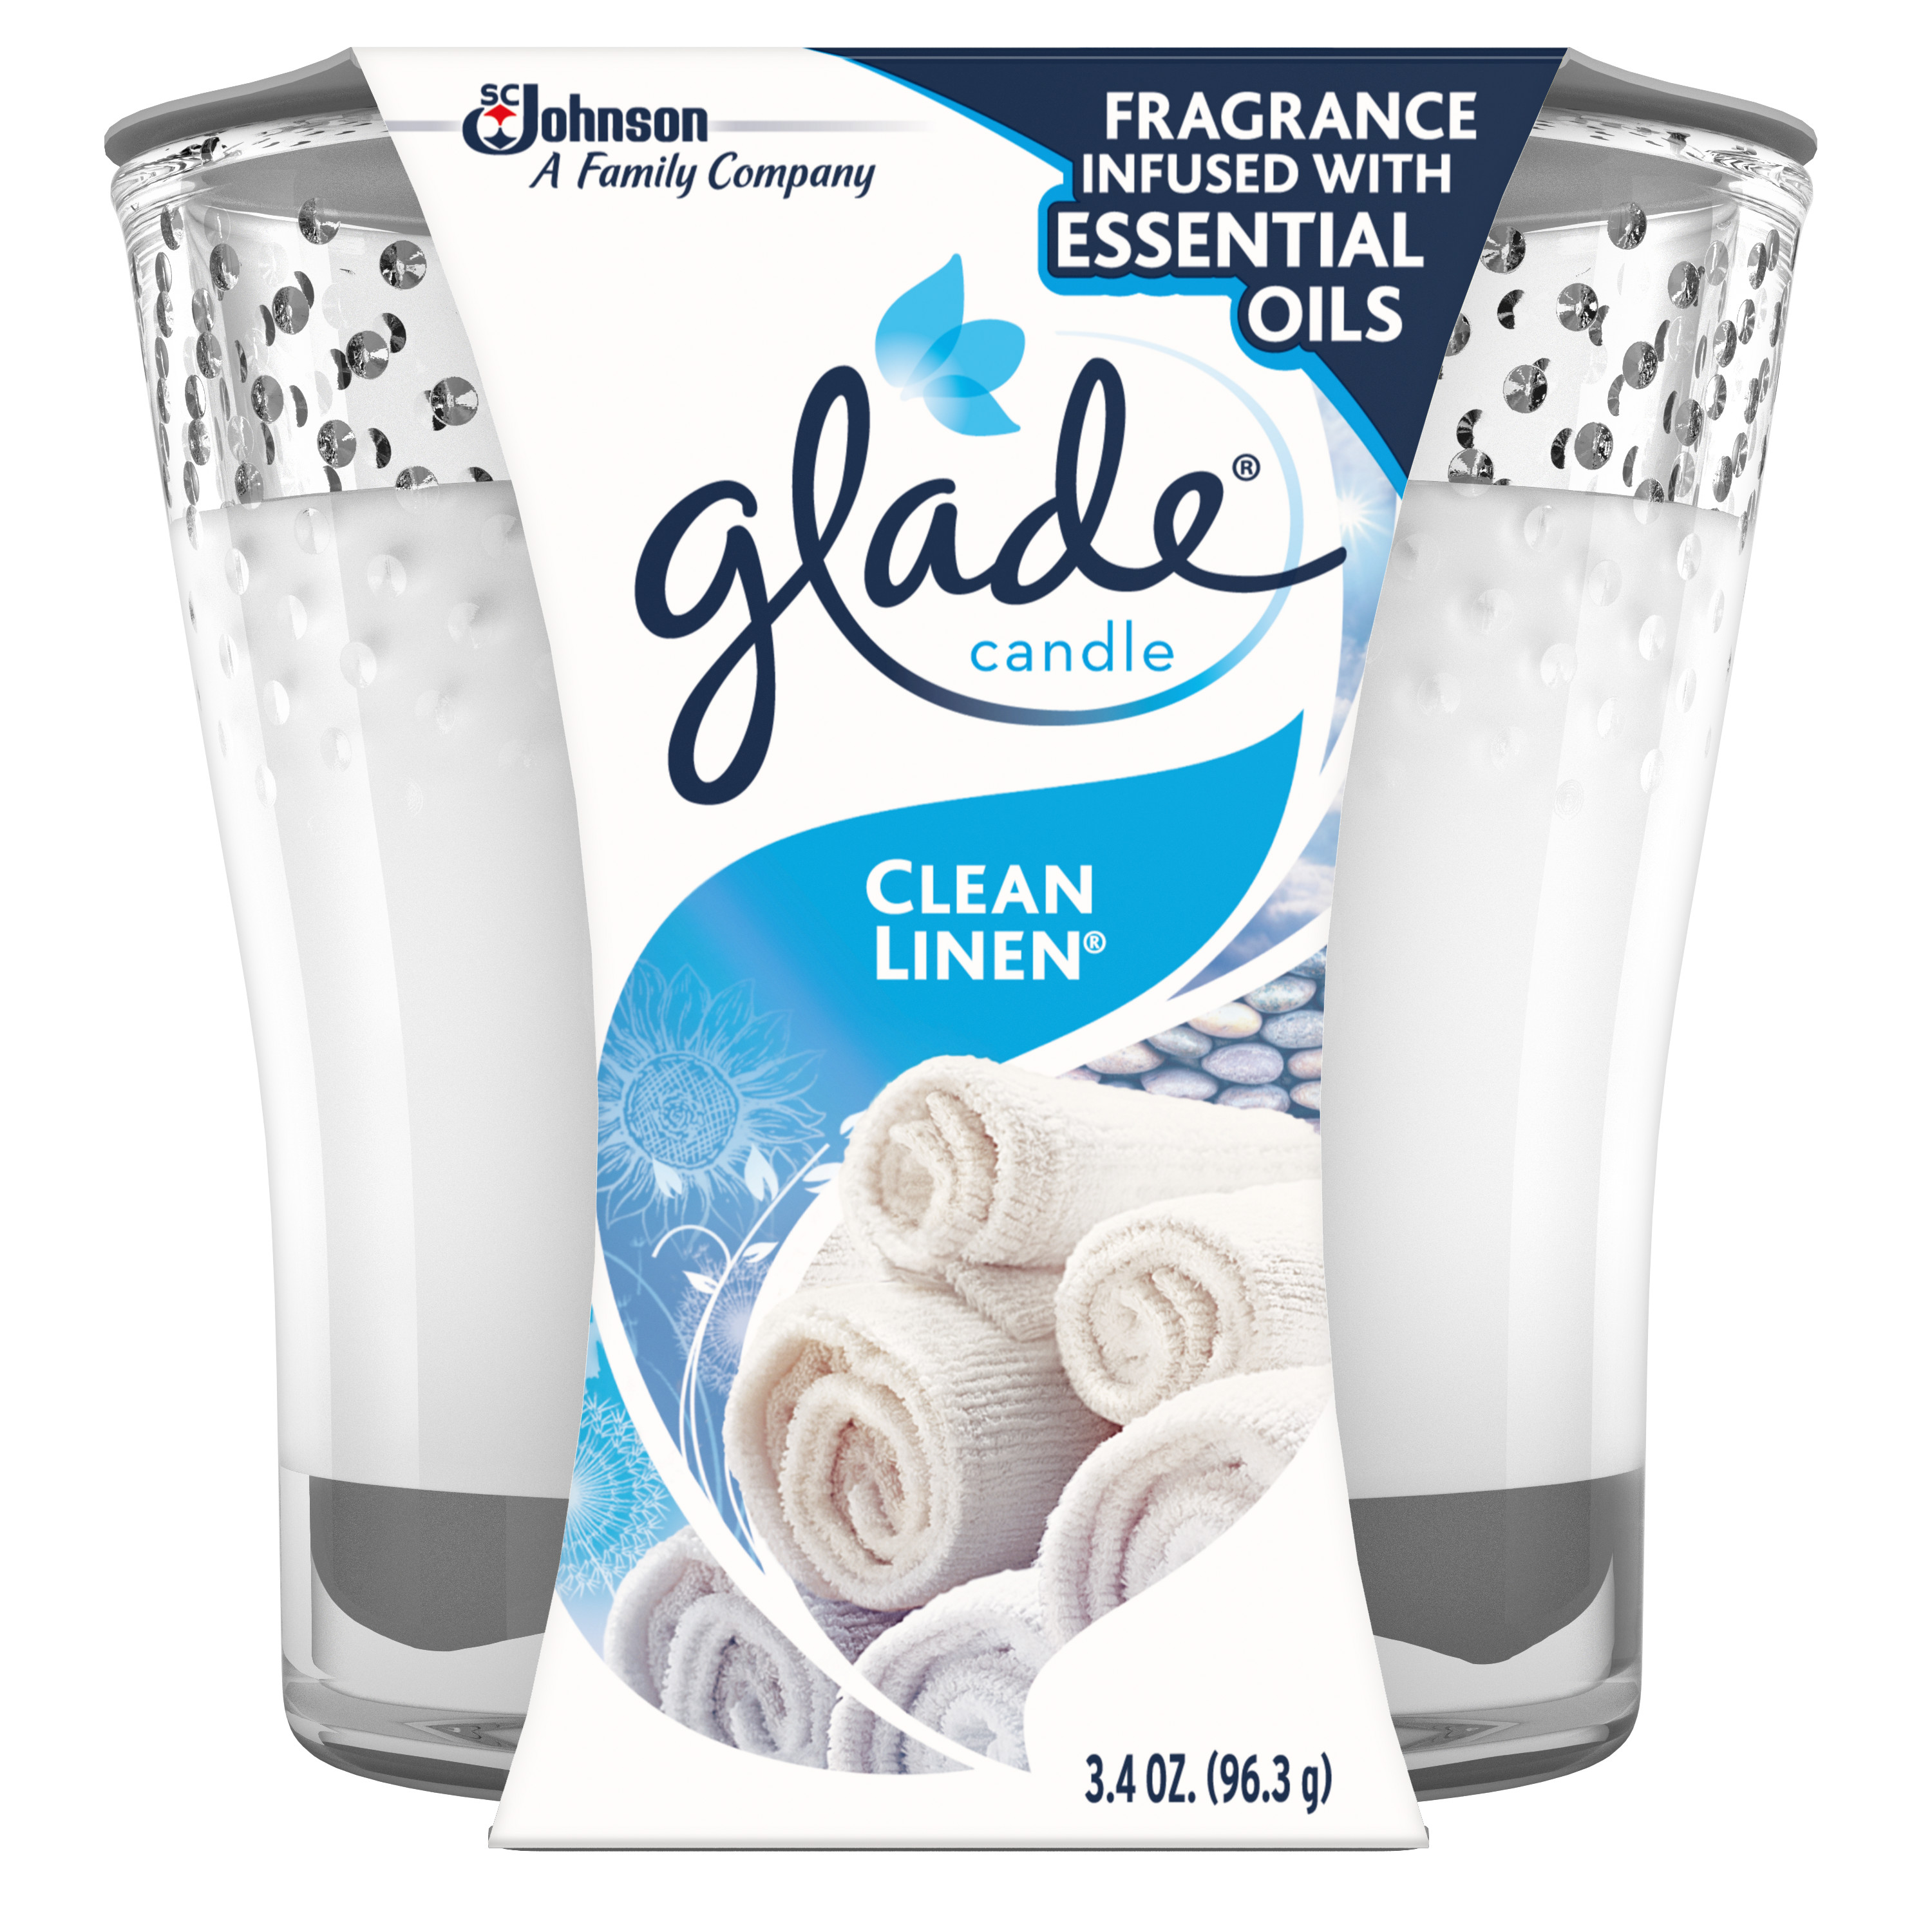 Glade Jar Candle Clean Linen, Quickly Fills Rooms With Essential Oil Infused Fragrance, 3.4 oz